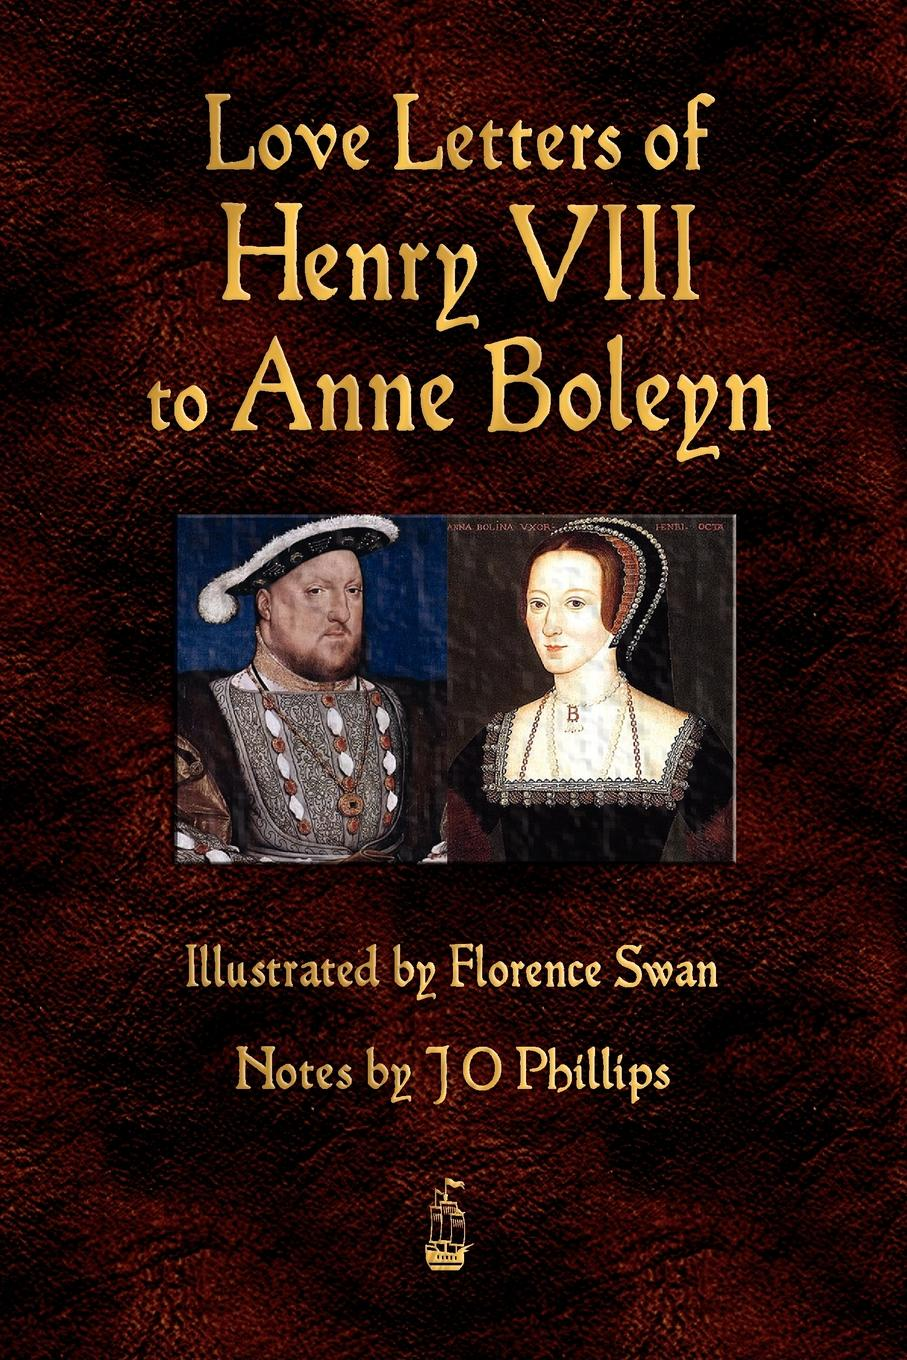 Henry VIII Love Letters of Henry VIII to Anne Boleyn henry o collected short stories viii сборник коротких рассказов viii на английском языке